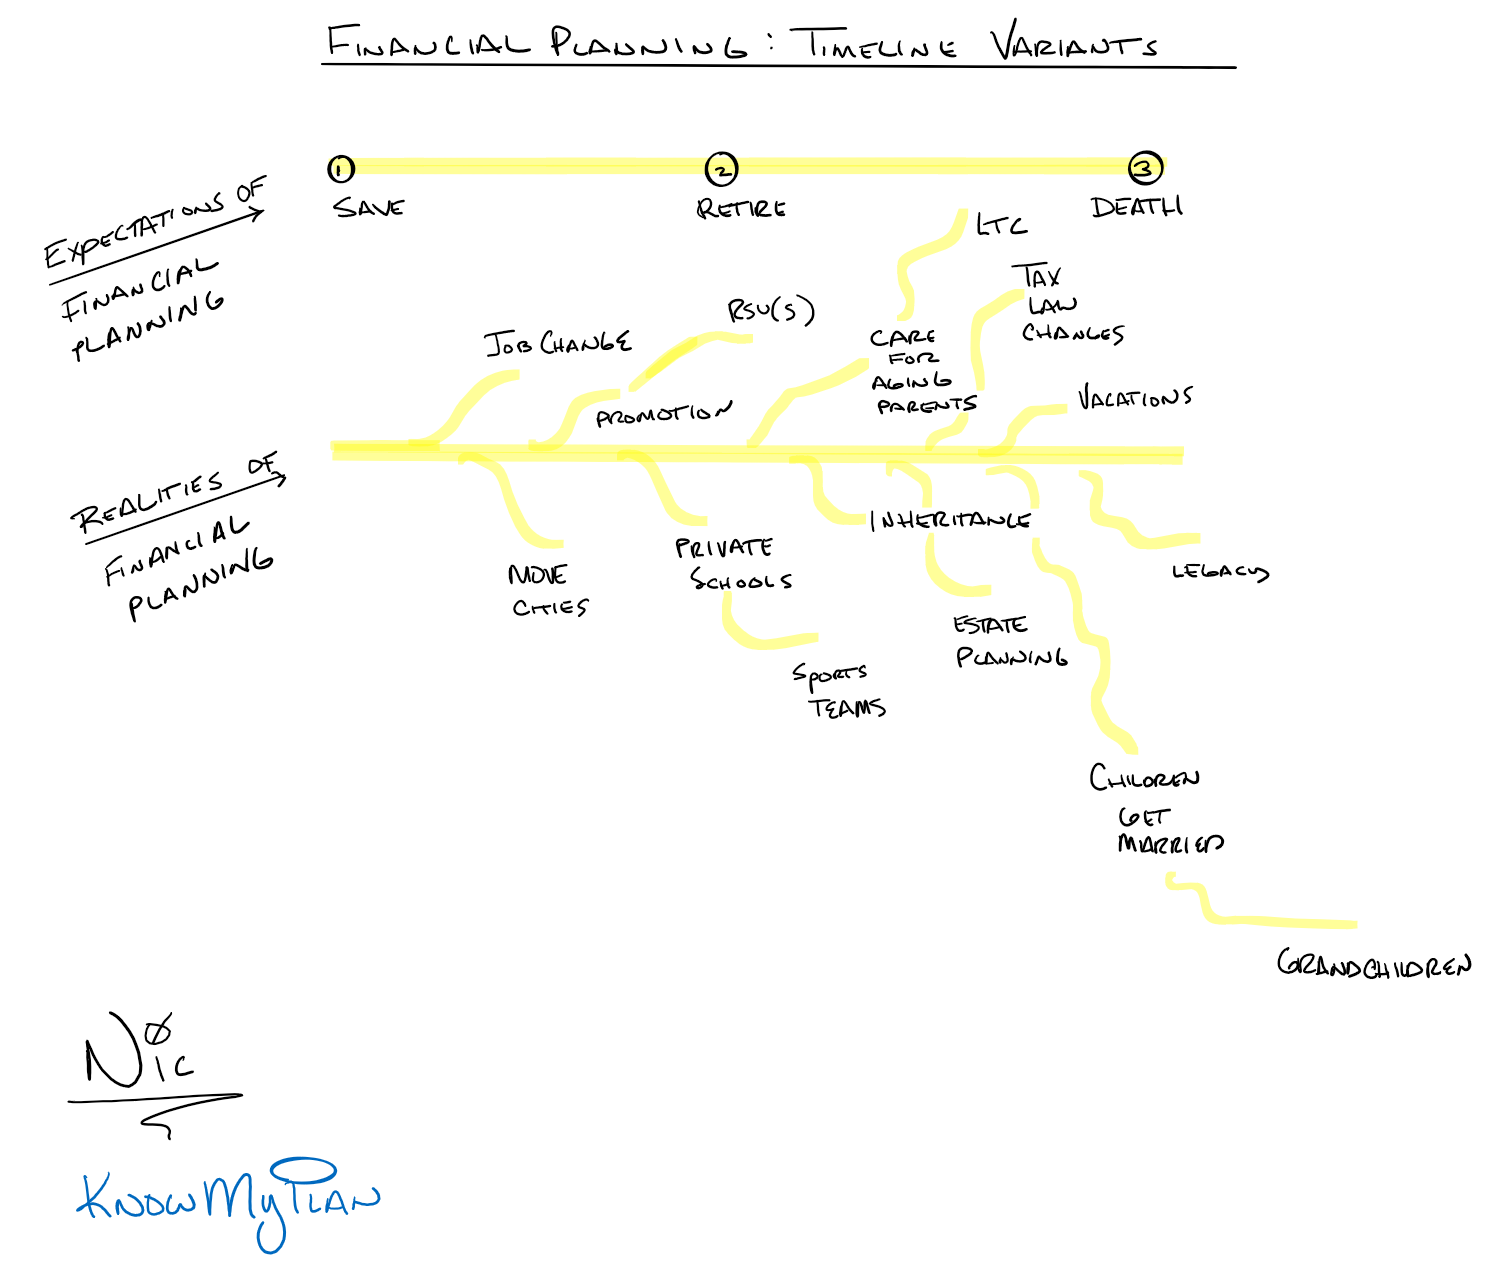 Financial Planning:  Timeline Variants Thumbnail